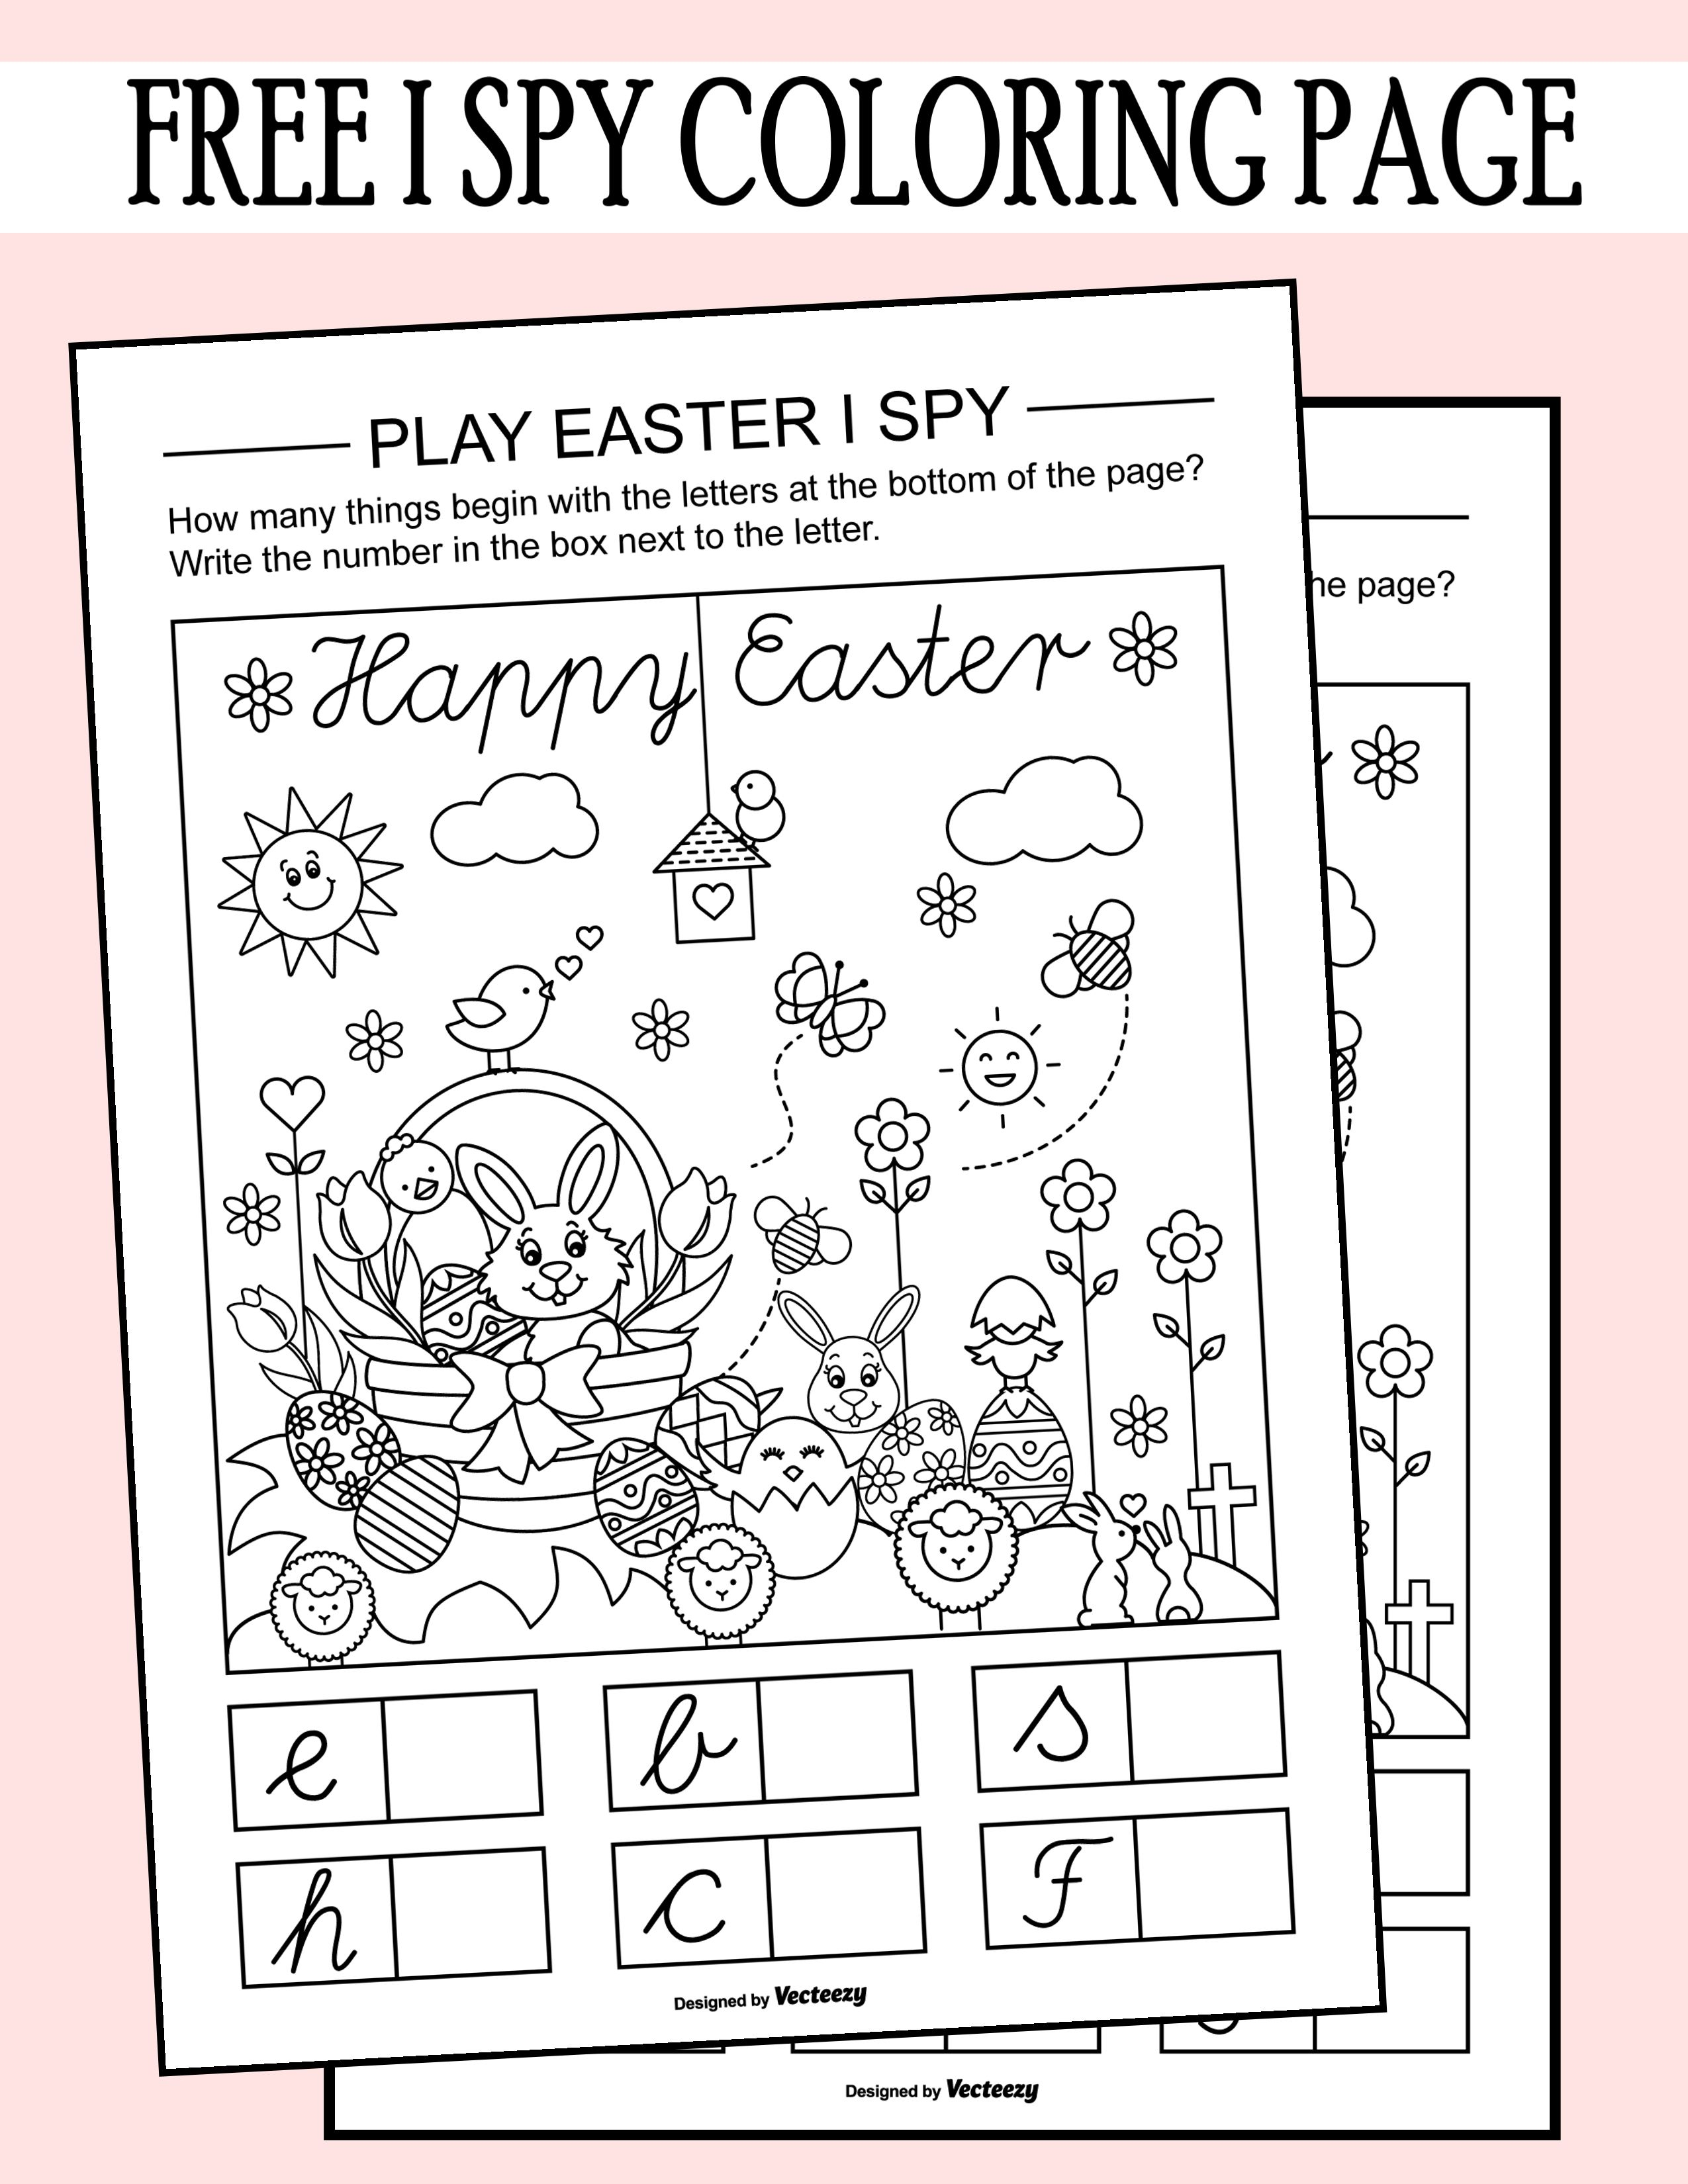 hight resolution of Easter I Spy Coloring Page Printable Worksheet - Printables 4 Mom    Coloring pages for kids